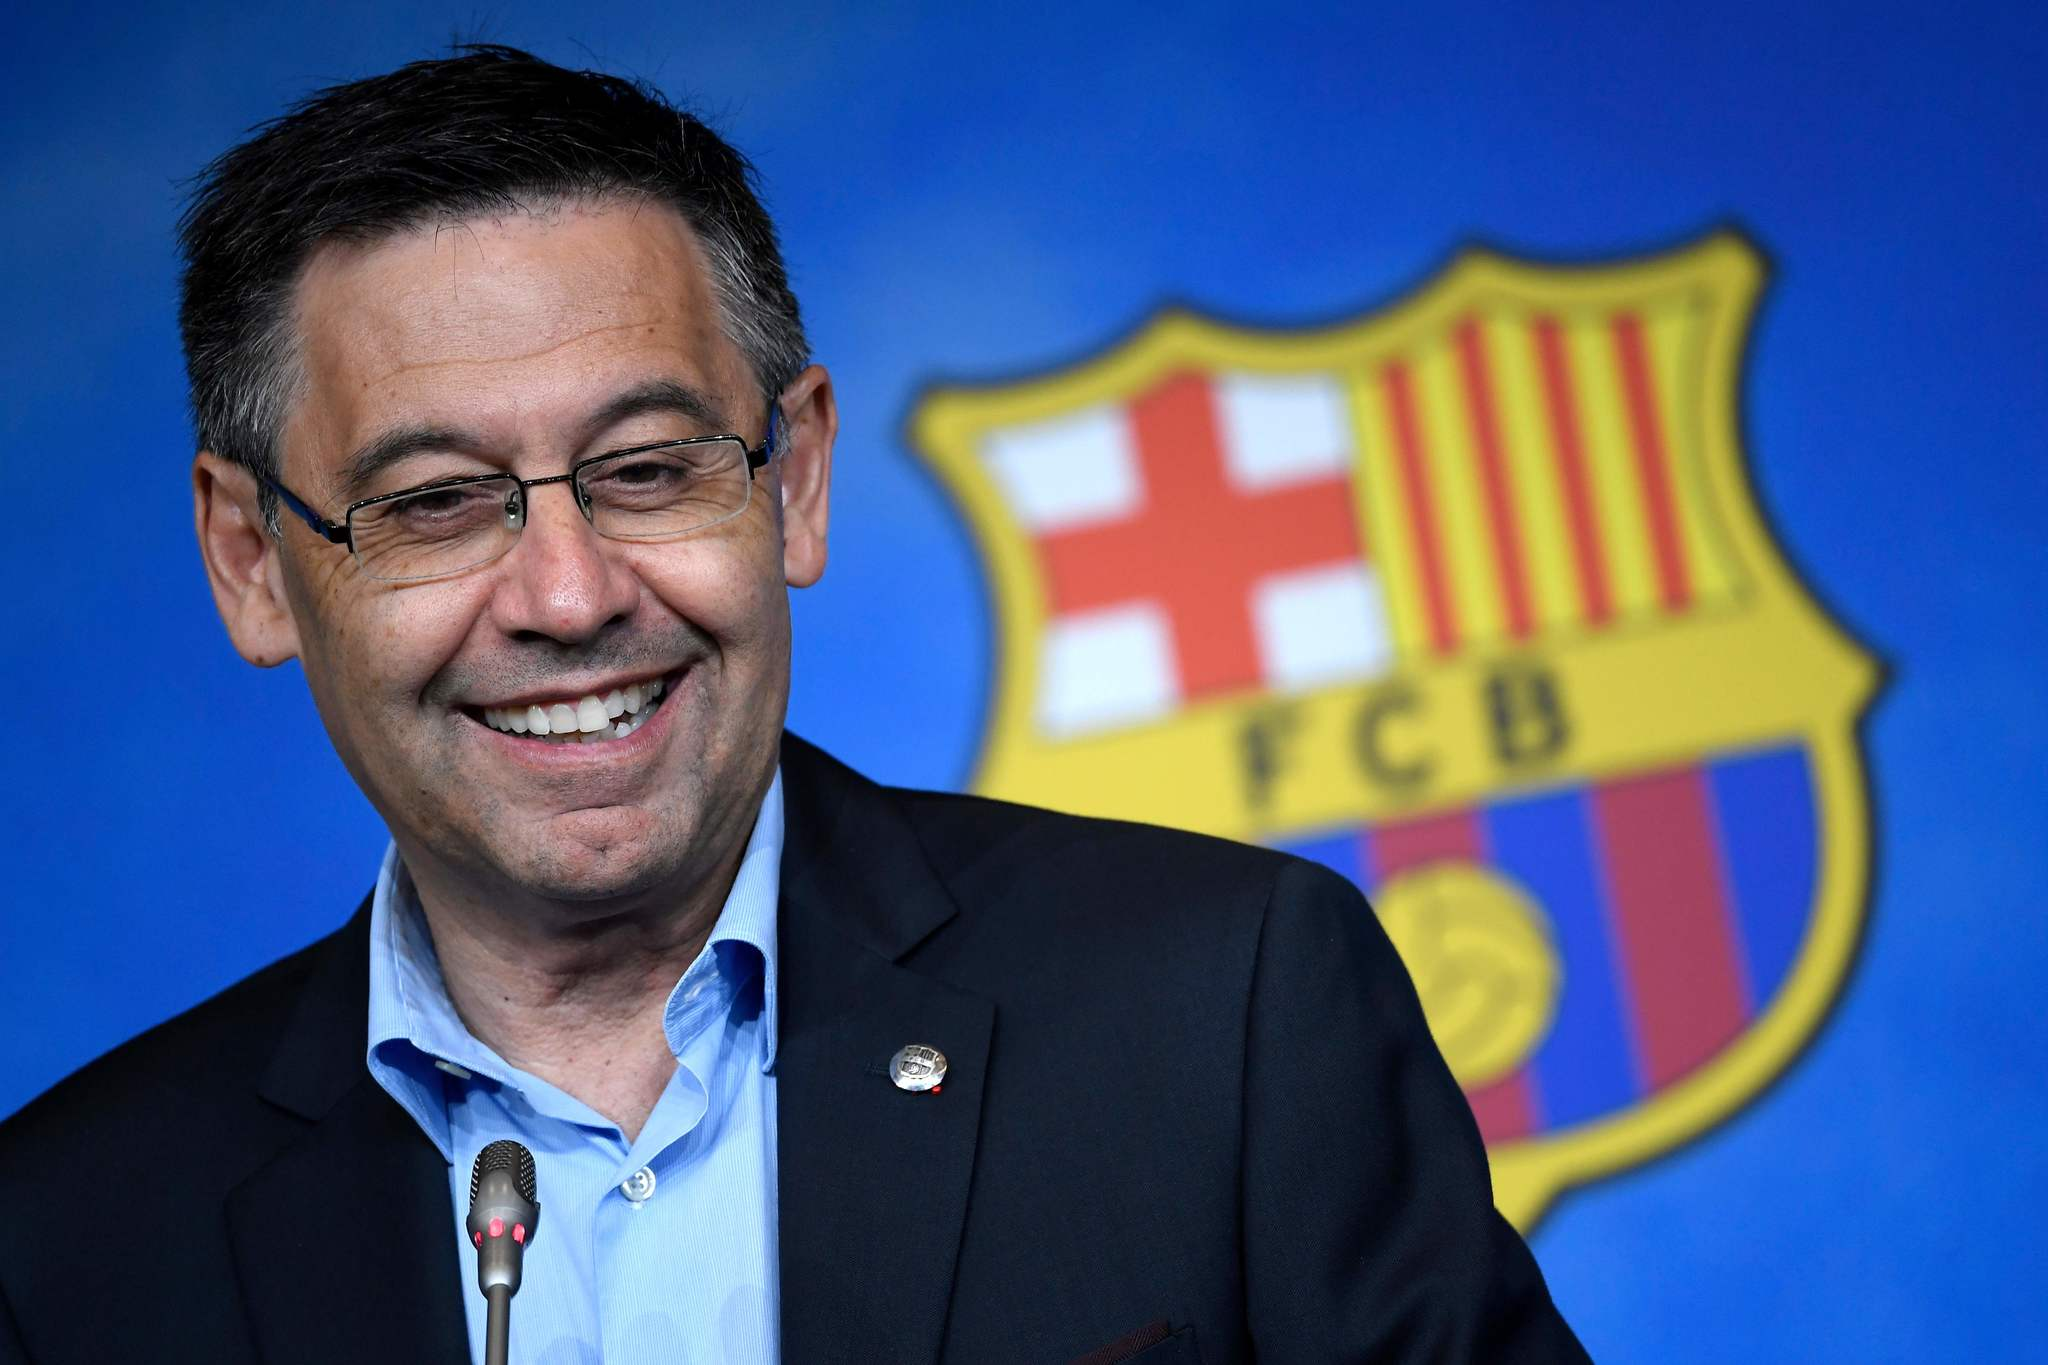 (FILES) In this file photo taken on July 05, 2019 Barcelonas president Josep Maria lt;HIT gt;Bartomeu lt;/HIT gt; smiles during a press conference at the Camp Nou stadium in Barcelona. - An unexpected winner in 2015 and Barcelonas bad guy in 2020, the clubs president Josep Maria lt;HIT gt;Bartomeu lt;/HIT gt; might feel some satisfaction after winning his showdown with Lionel lt;HIT gt;Messi lt;/HIT gt;. (Photo by LLUIS GENE / AFP)